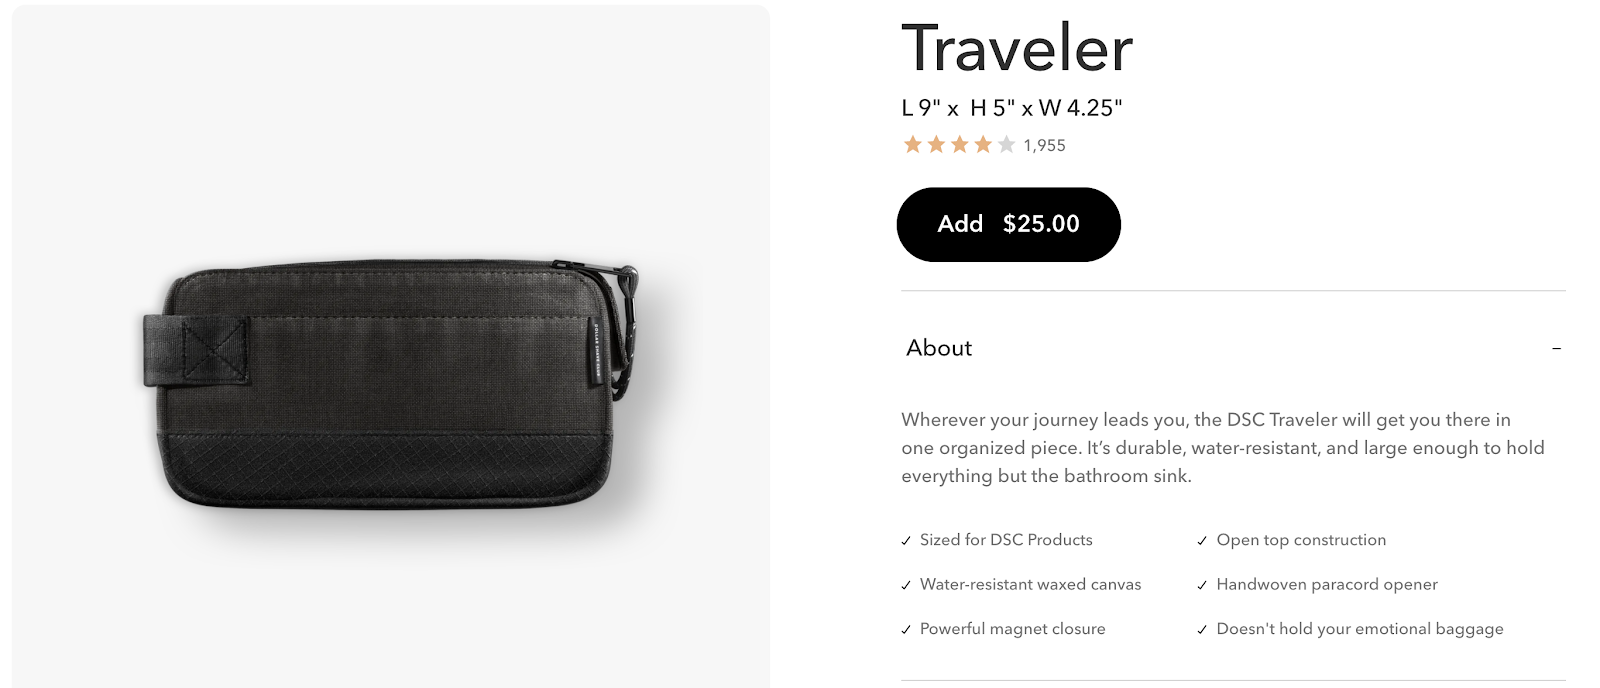 product description_traveler bag